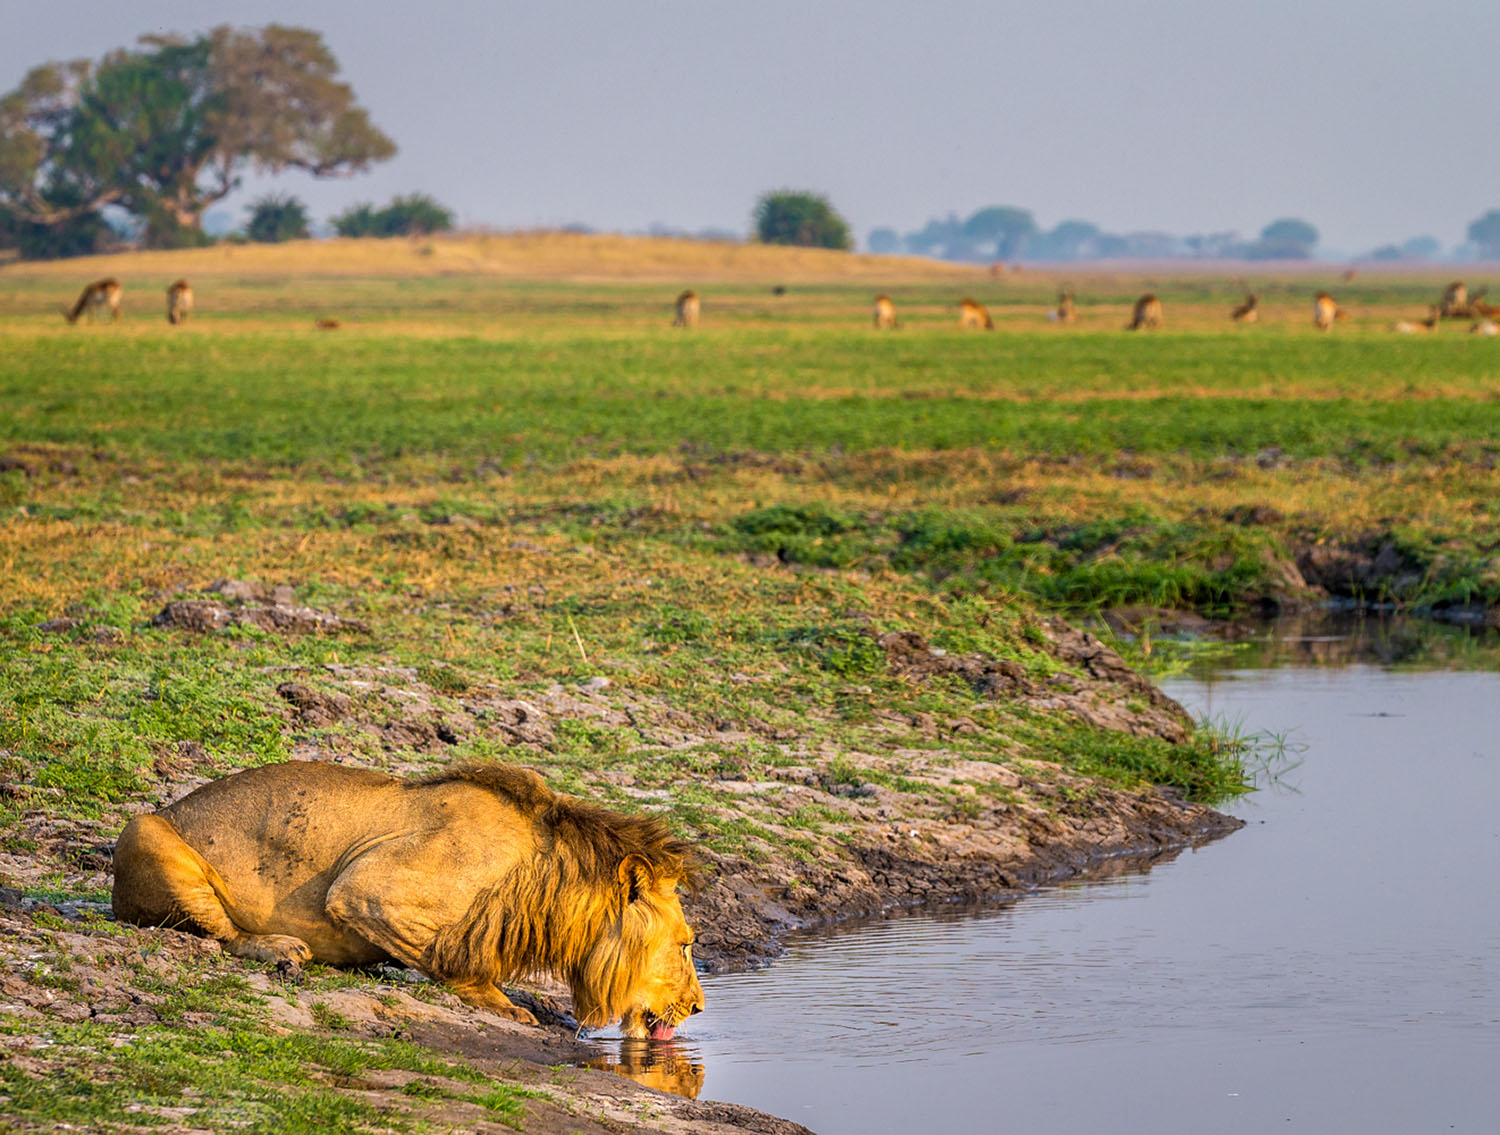 kasonso busanga camp kafue-lodges-zambia-in-style-busanga-plain-kafue-national-park-unique-location-lion-drinking